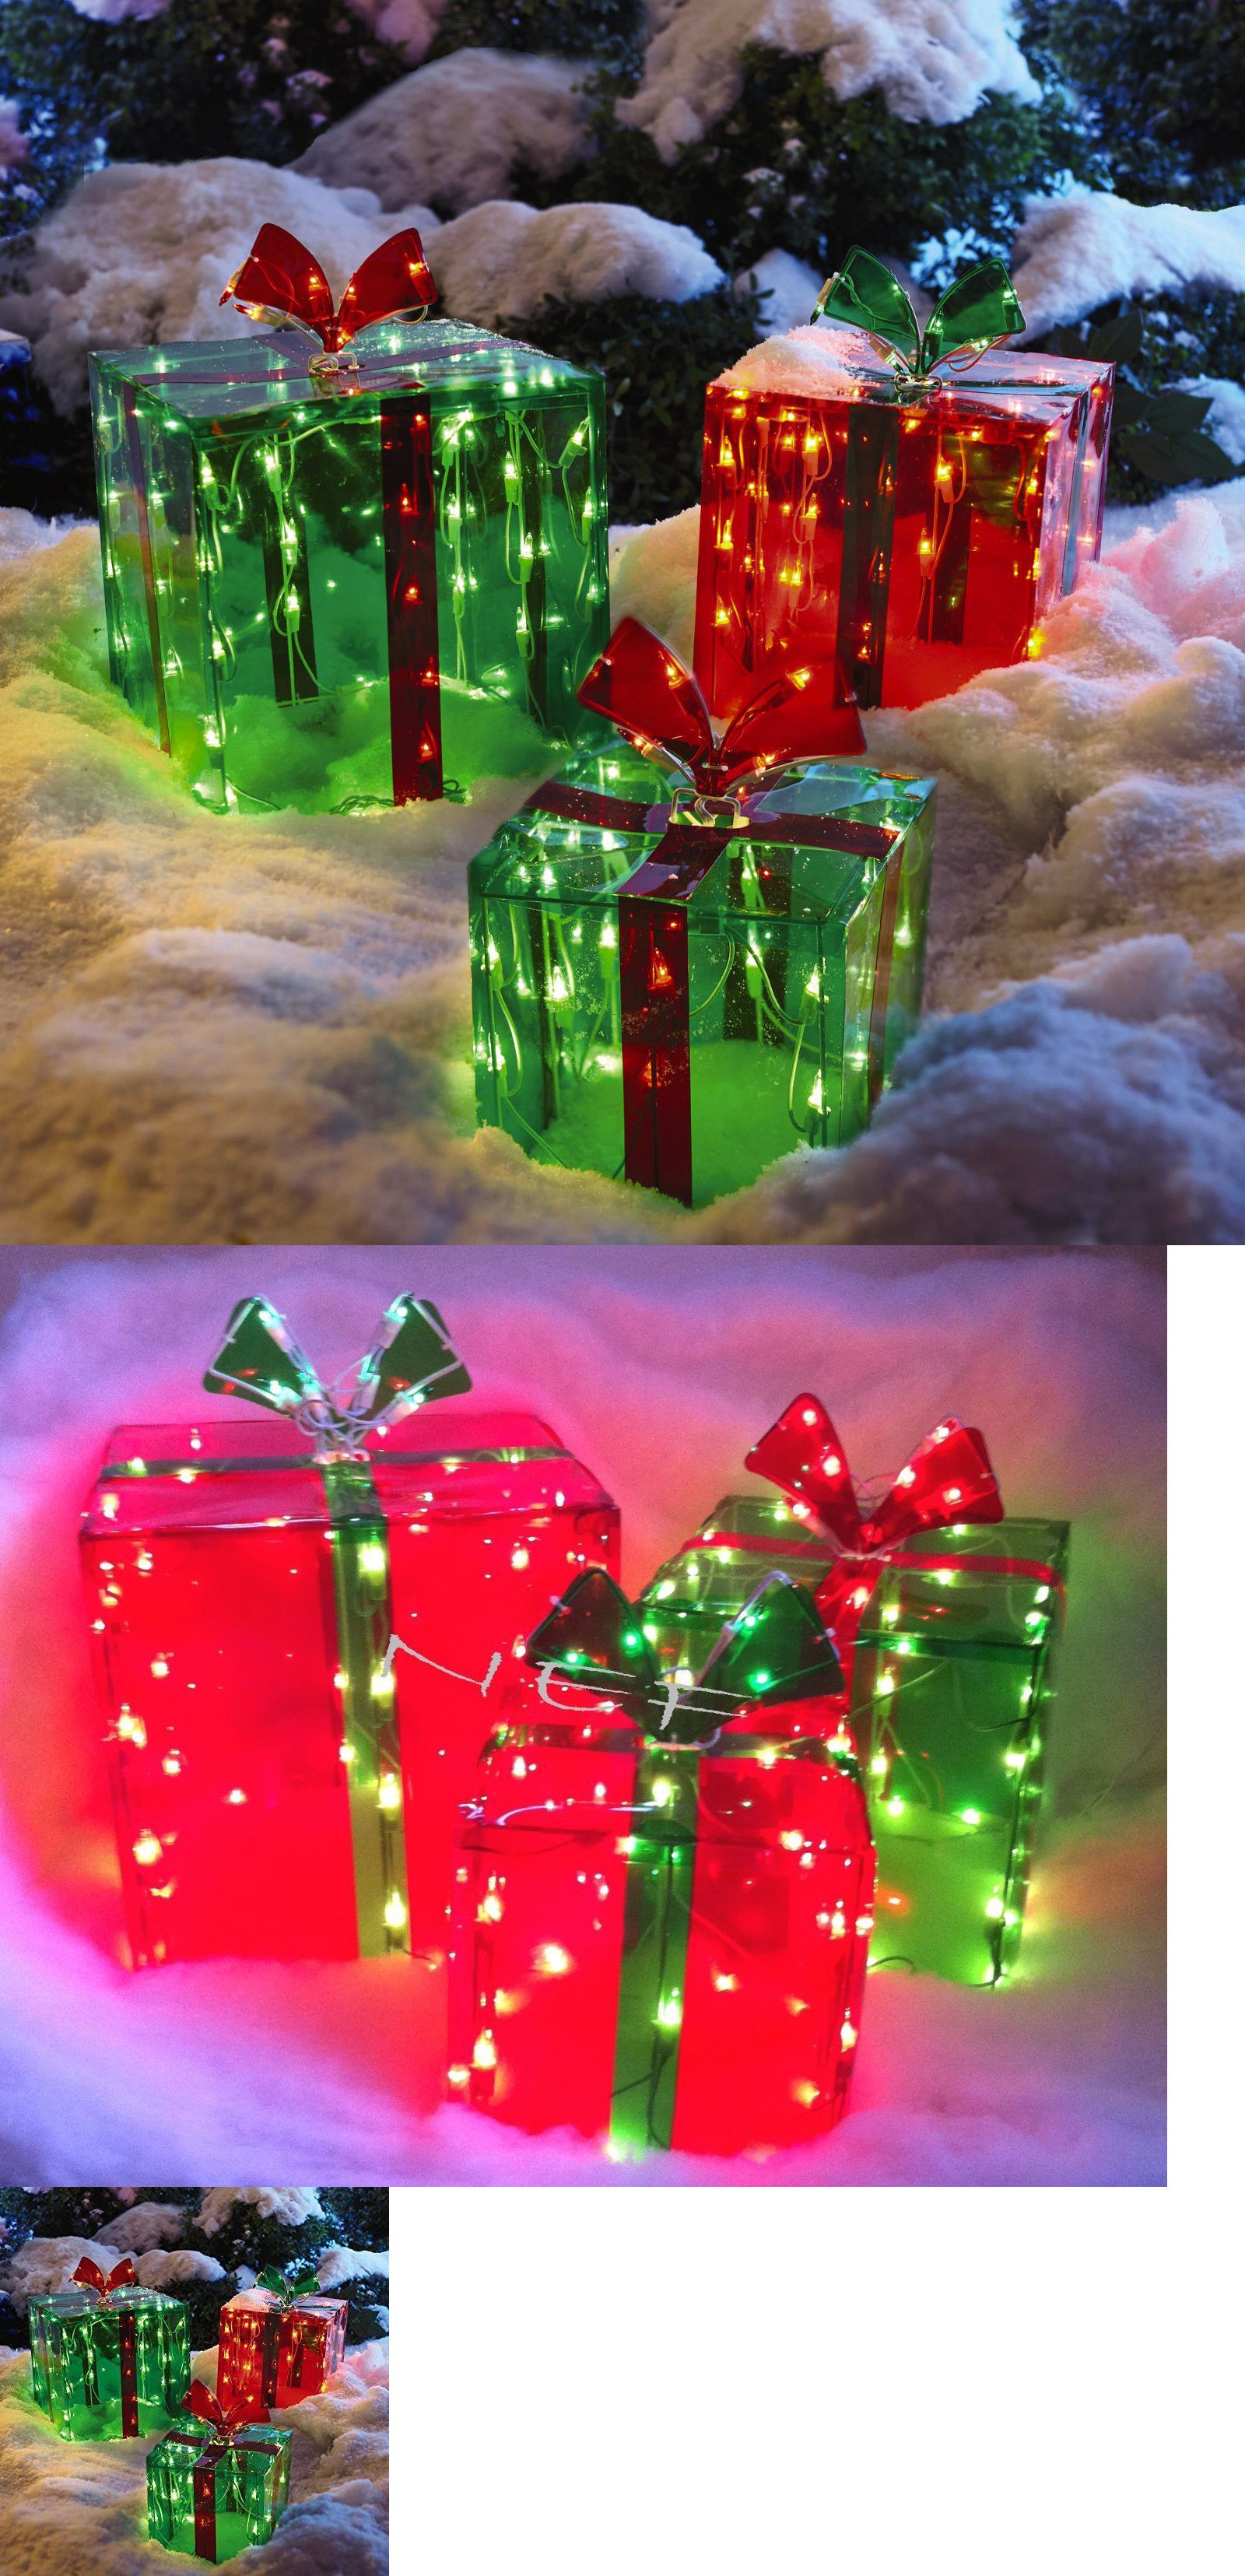 yard d cor 156812 3 lighted gift boxes christmas decoration yard decor 150 lights indoor